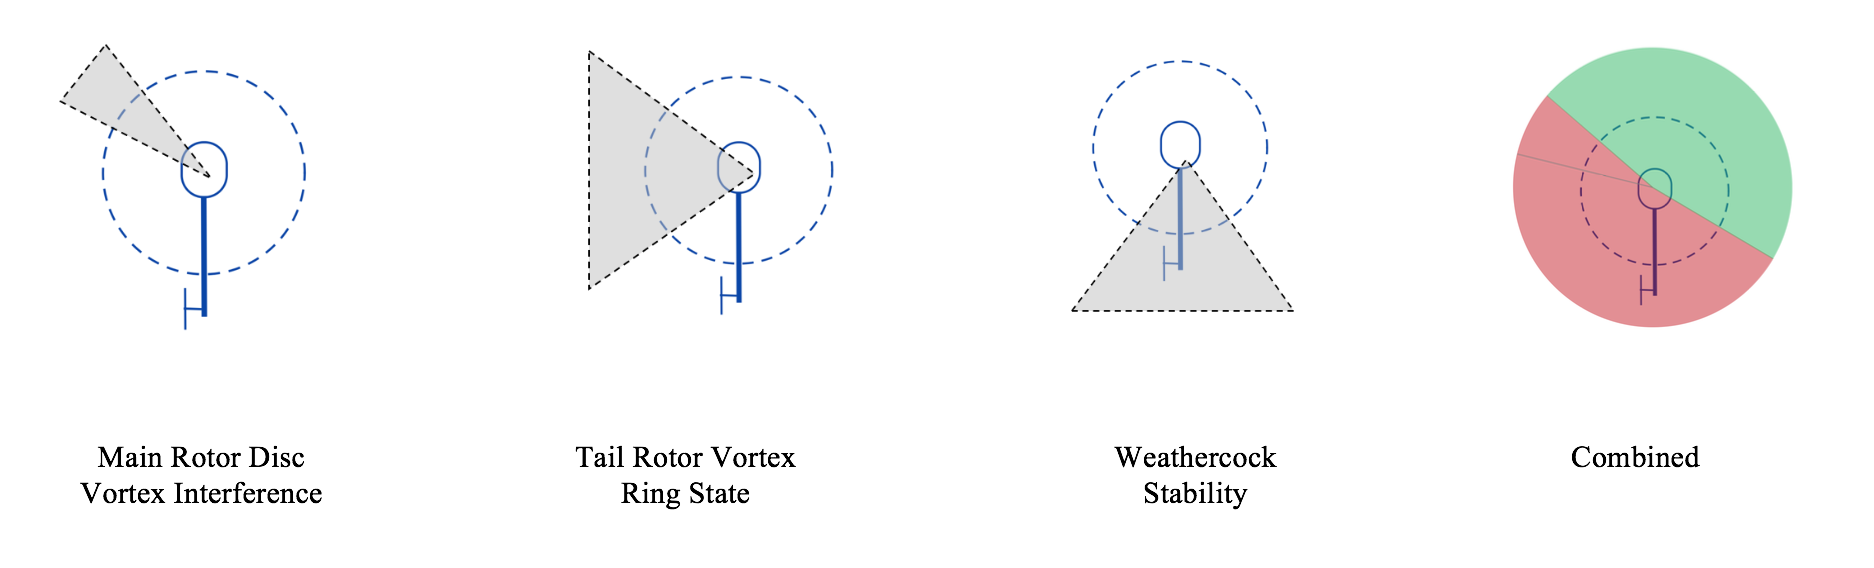 Diagram showing wind conditions leading to loss of tail rotor effectiveness or LTE